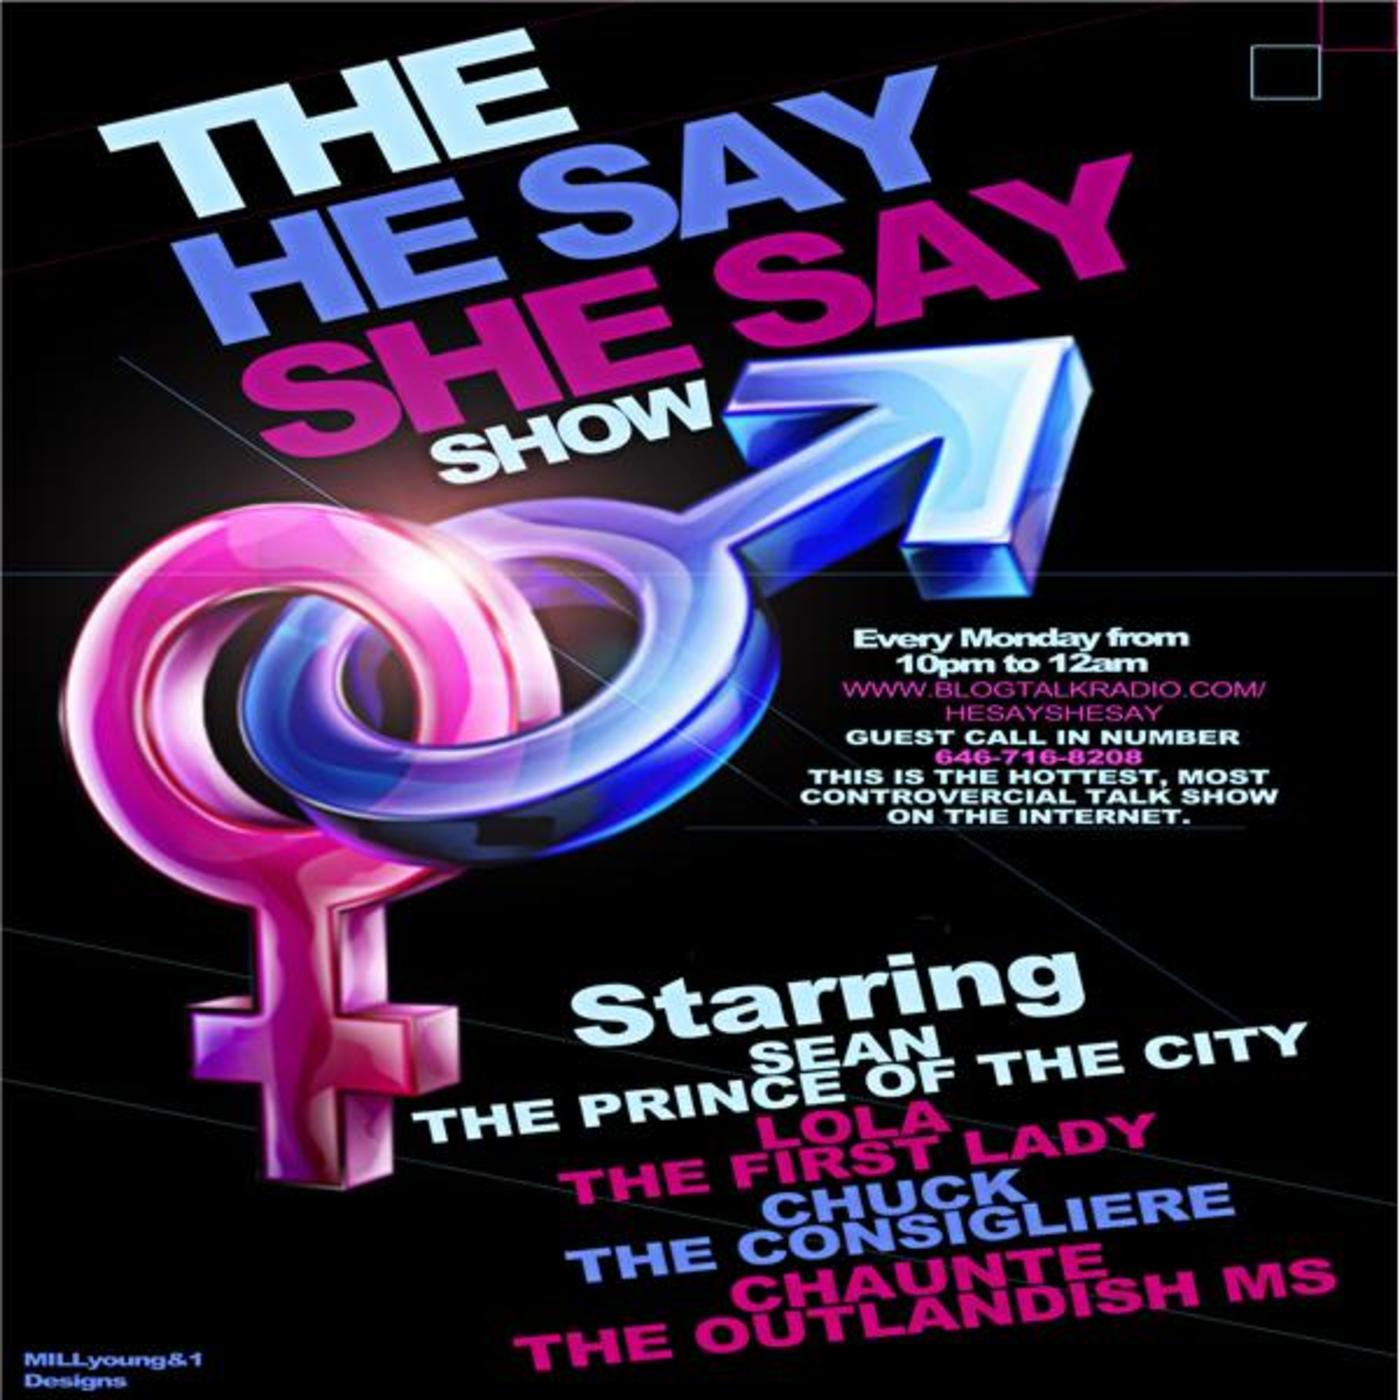 The He Say, She Say Show